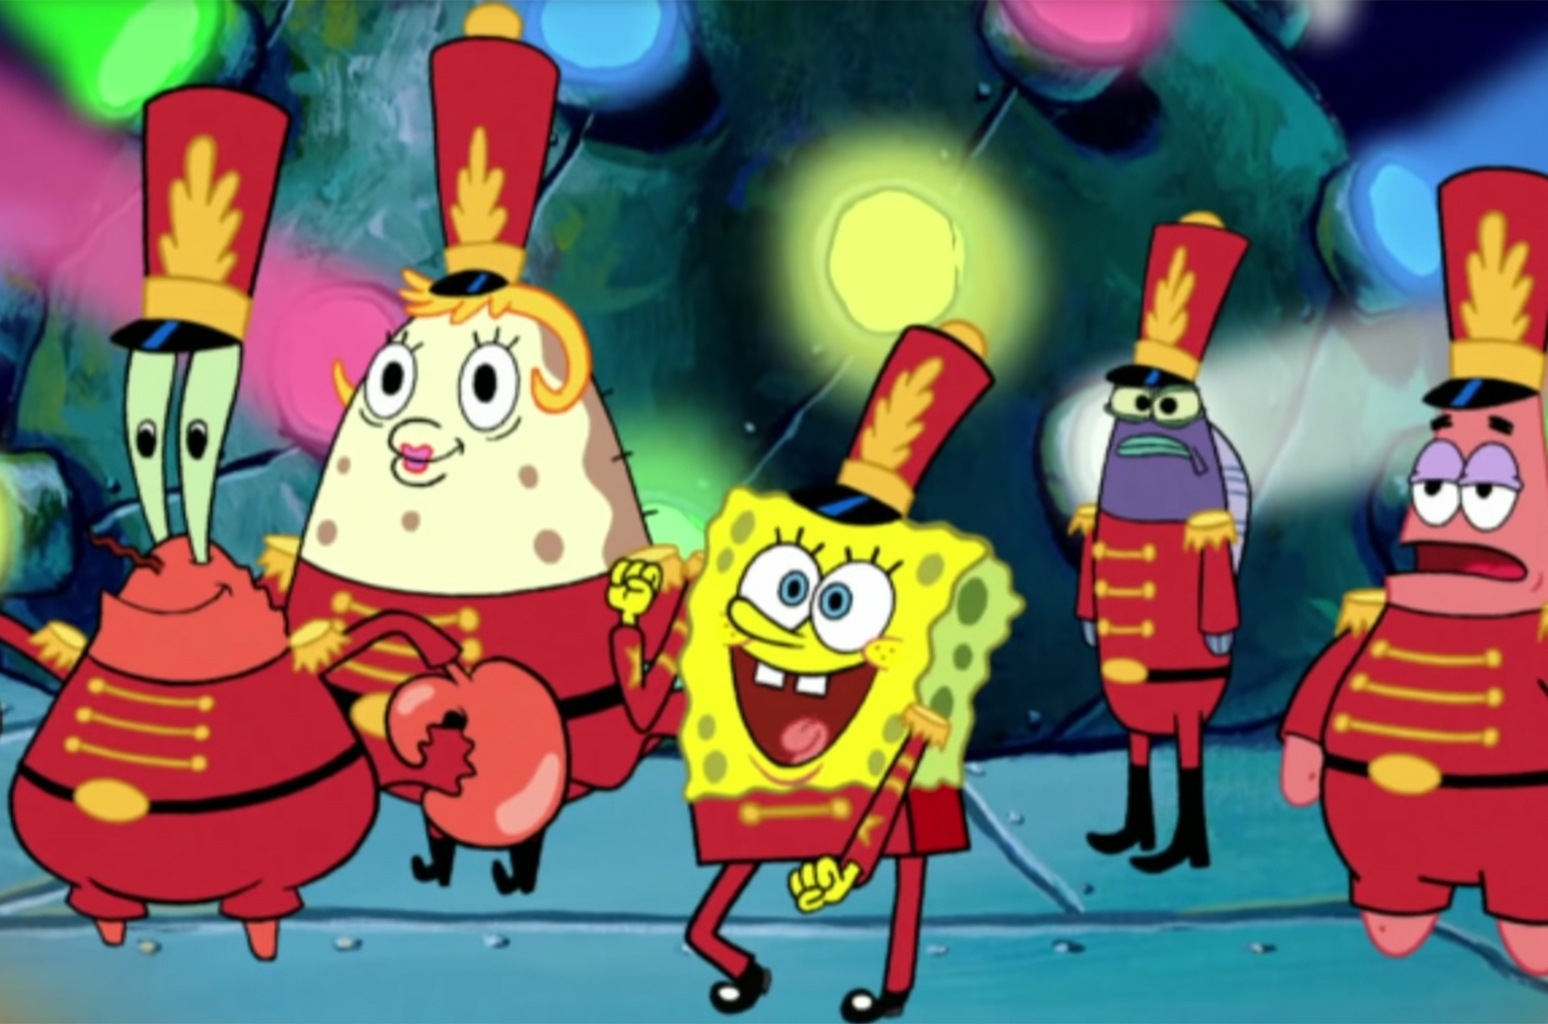 Spongebob Squarepants' 'sweet Victory' Jumps 566% In Streams pertaining to Spongebob Super Bowl Sweet Victory